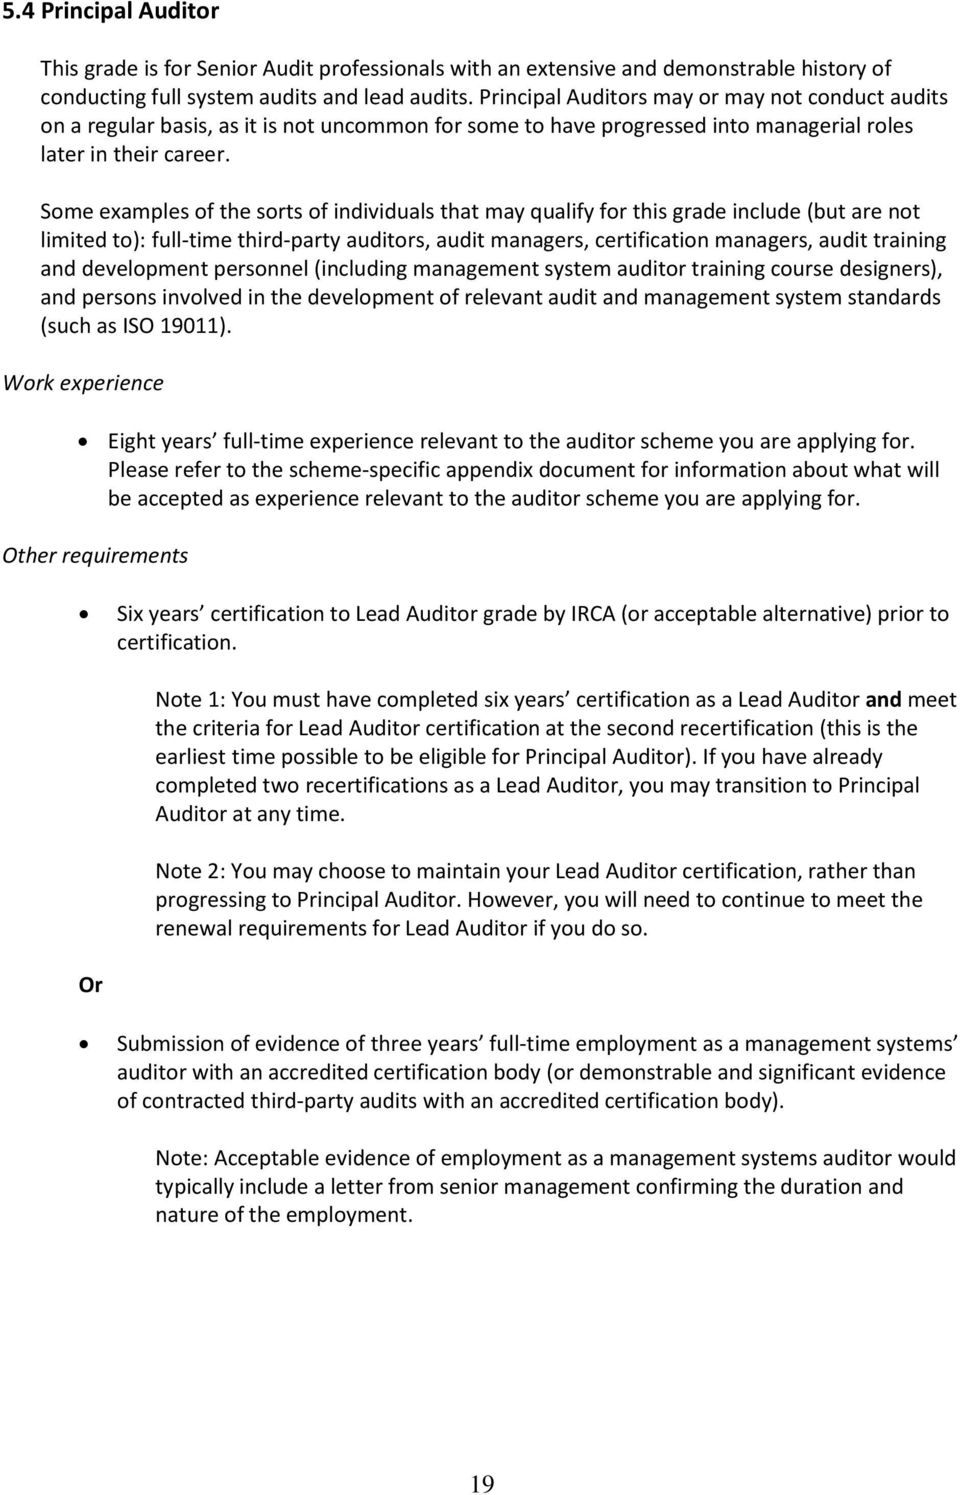 Requirements For Certification As An Irca Auditor All Schemes Pdf